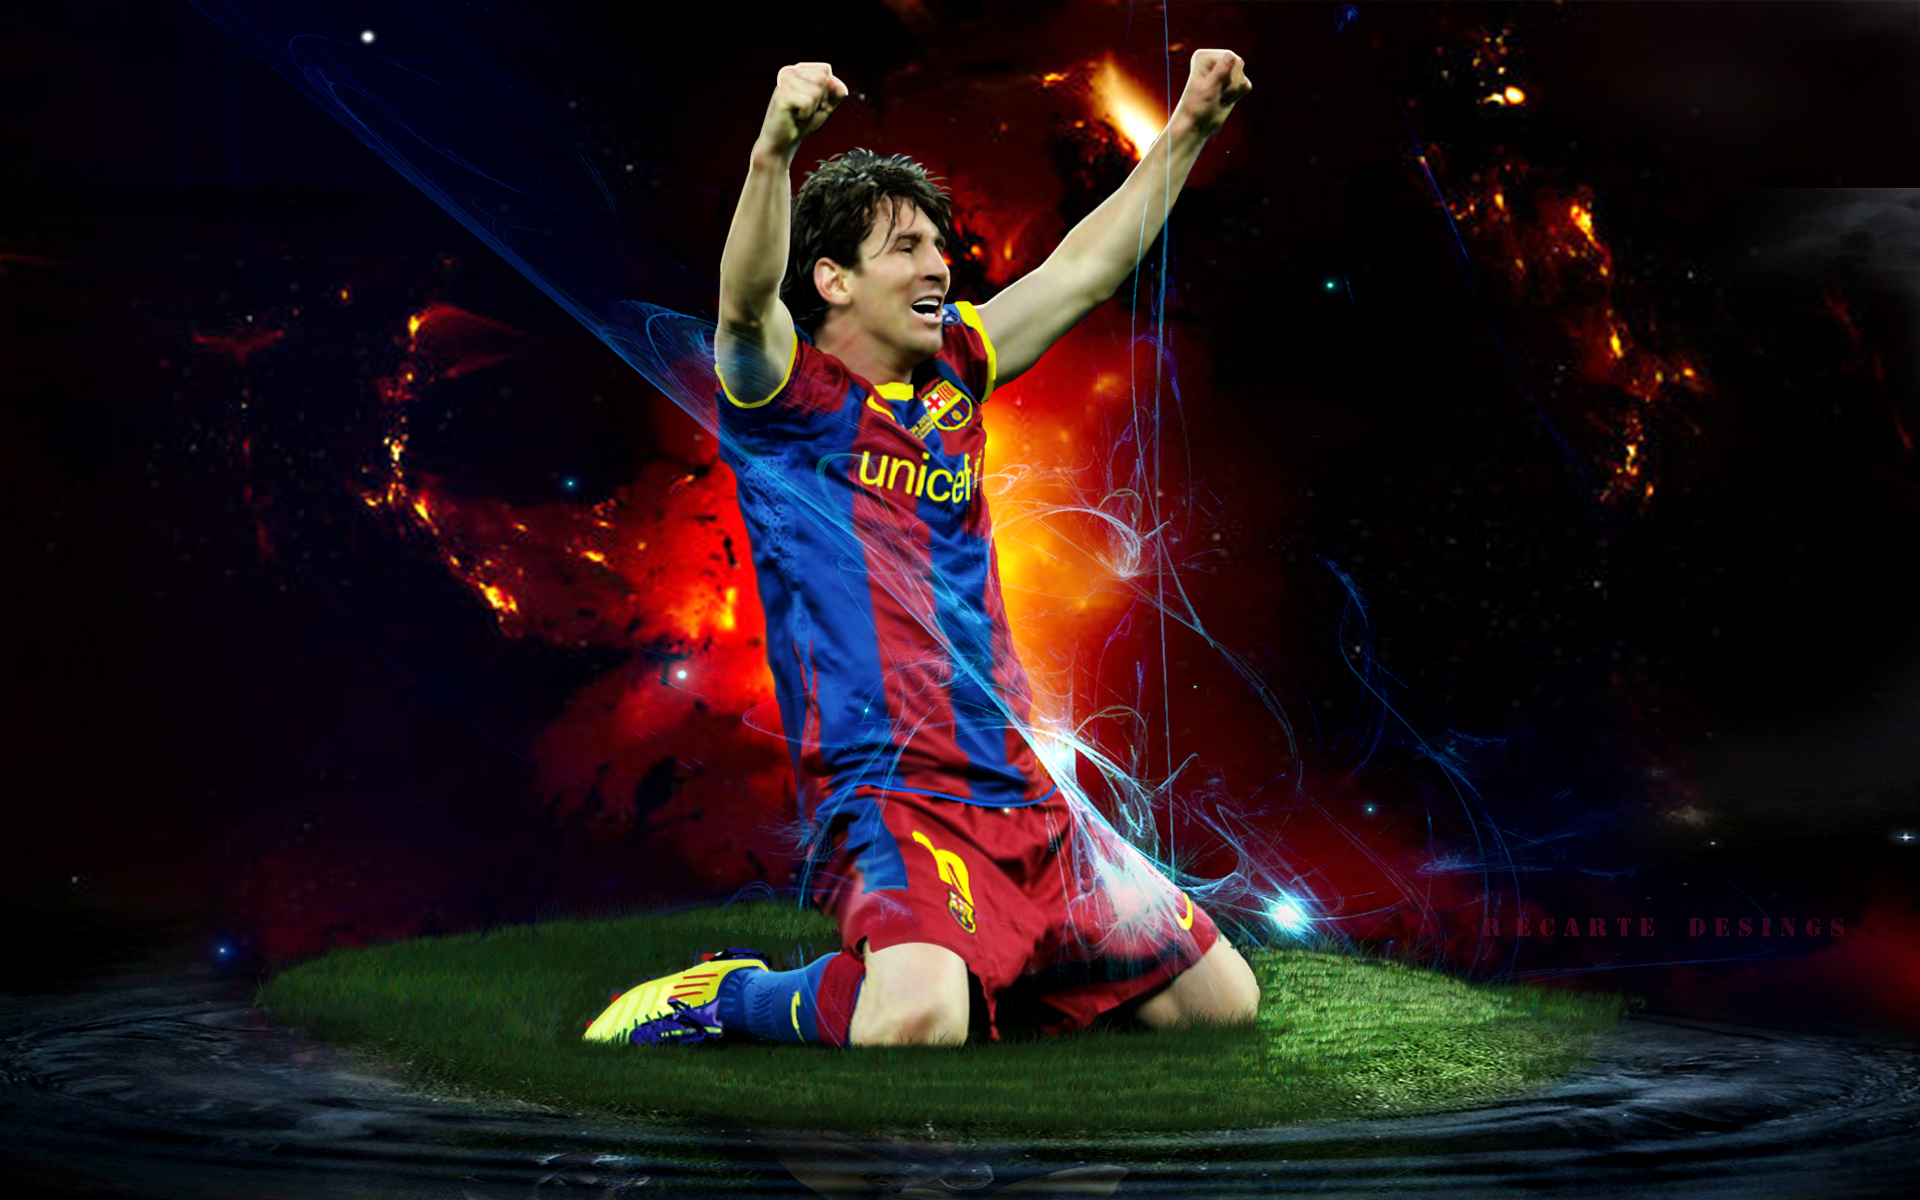 Messi wallpapers wallpaper high definition high quality messi wallpapers voltagebd Choice Image